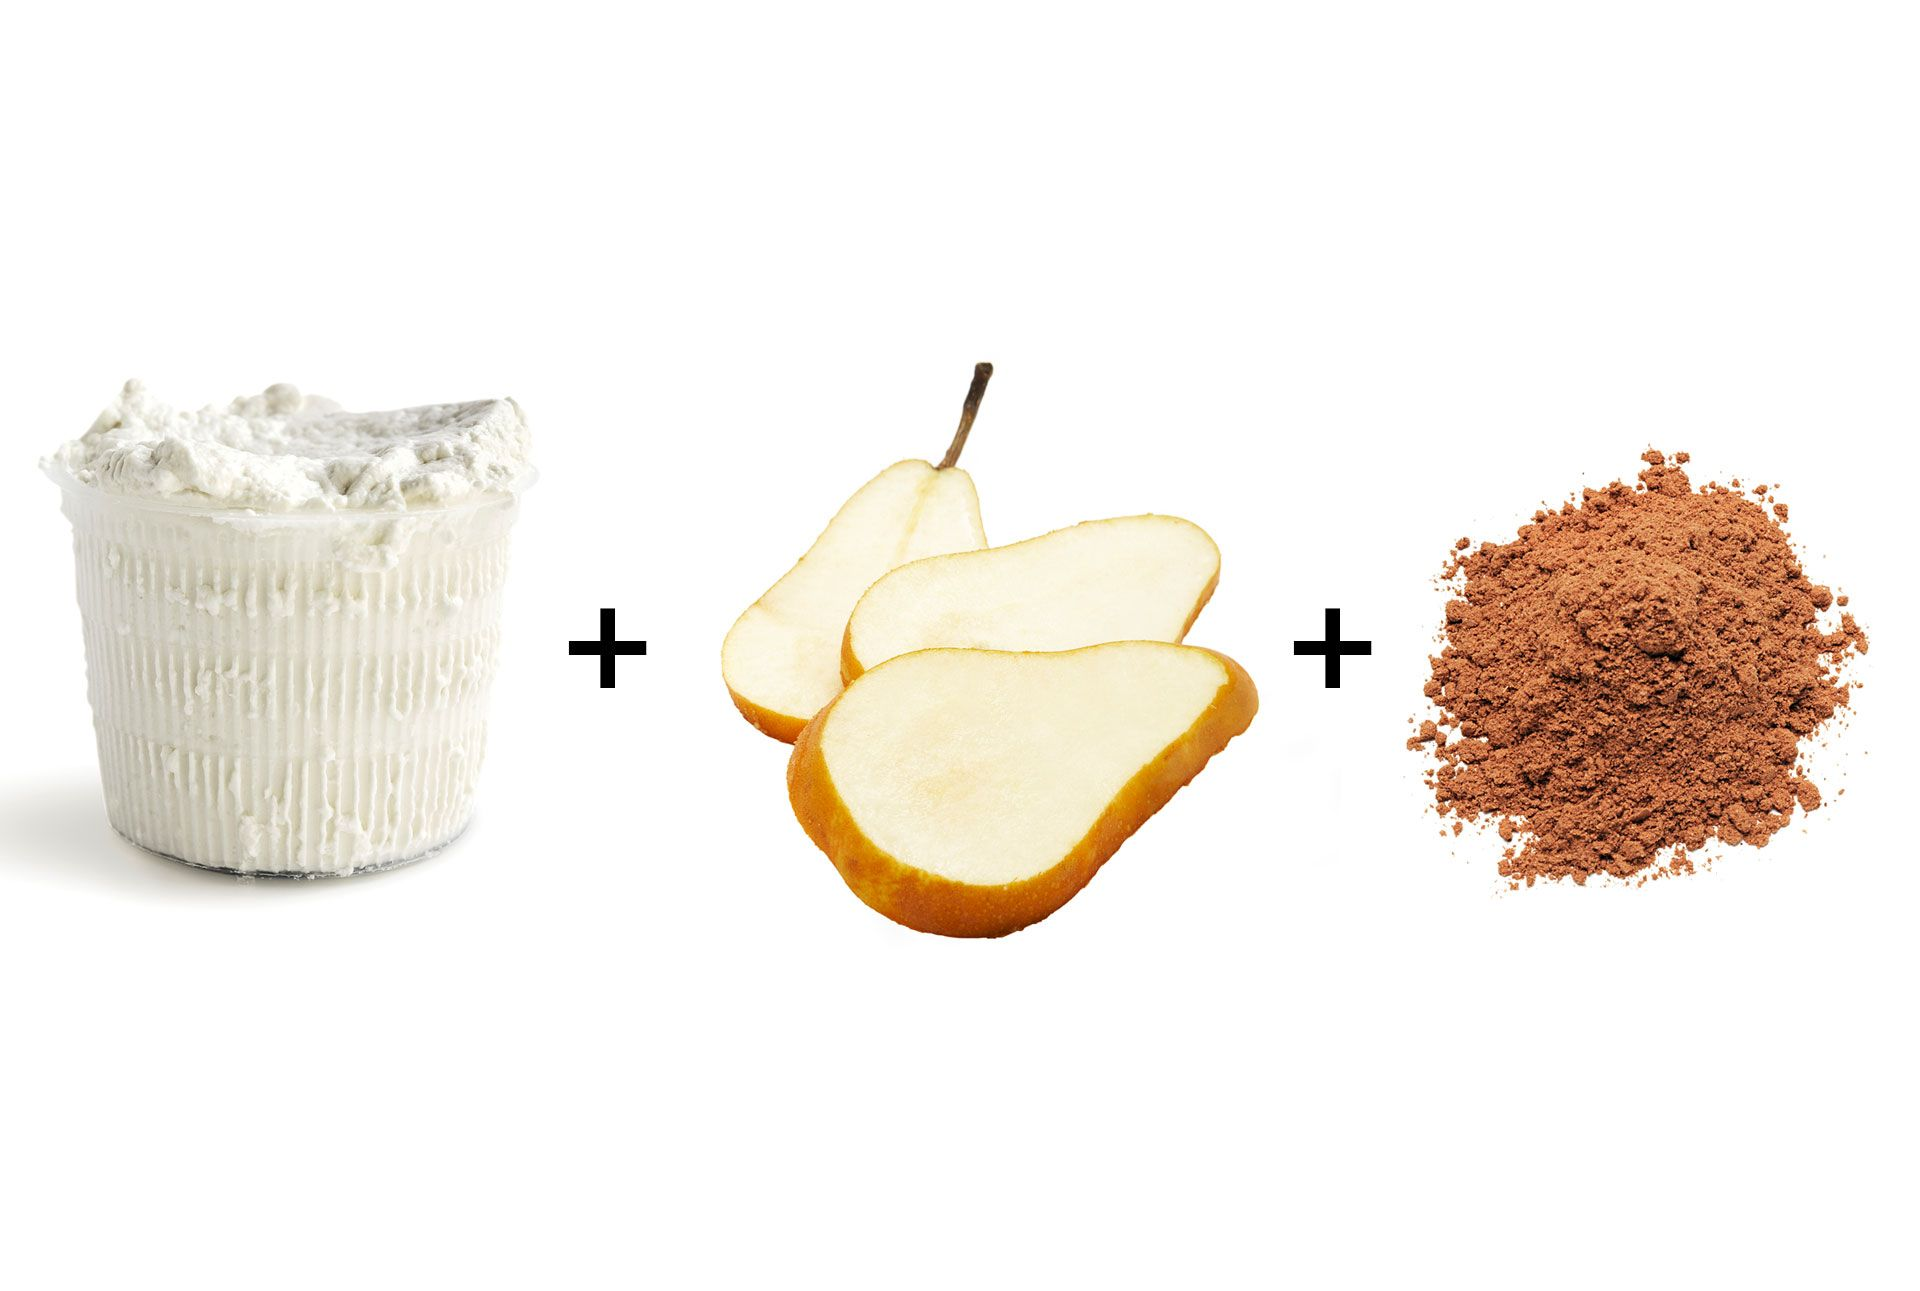 The+25+best+snacks+for+weight+loss